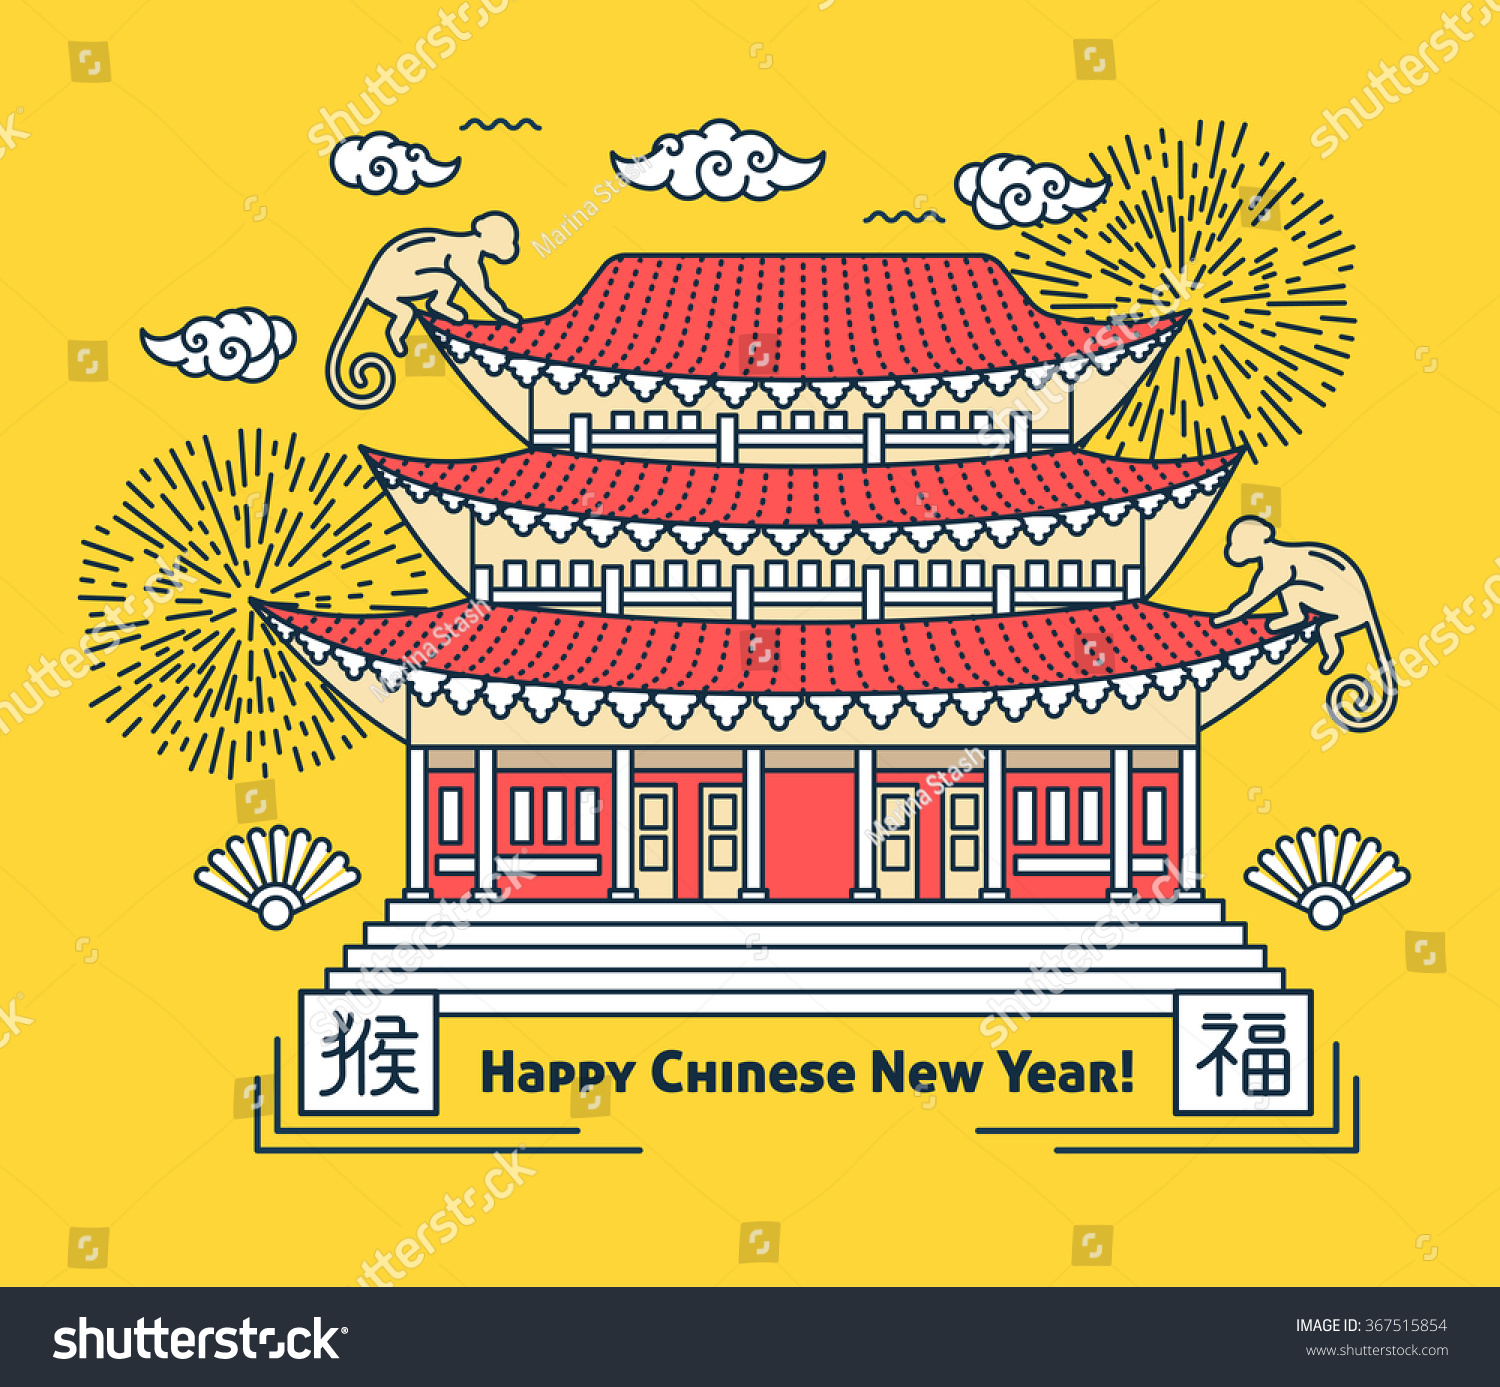 Chinese new year flat thin line stock vector 367515854 shutterstock chinese new year flat thin line greeting card template temple pagoda house lantern kristyandbryce Gallery